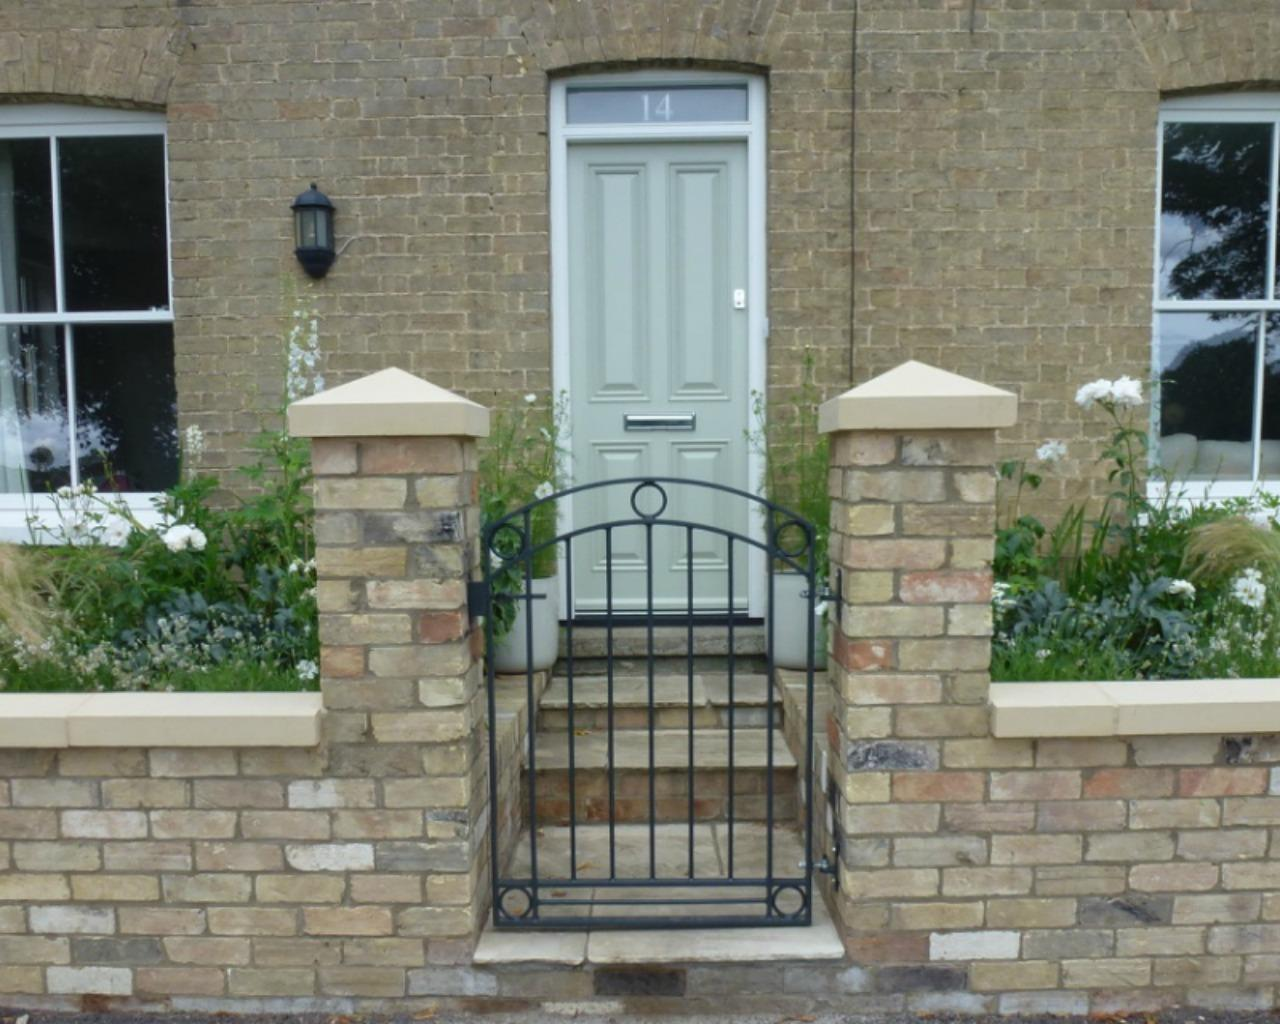 Main page rotator - Front Door Law & Lewis of Cambridge Ltd 23.jpg